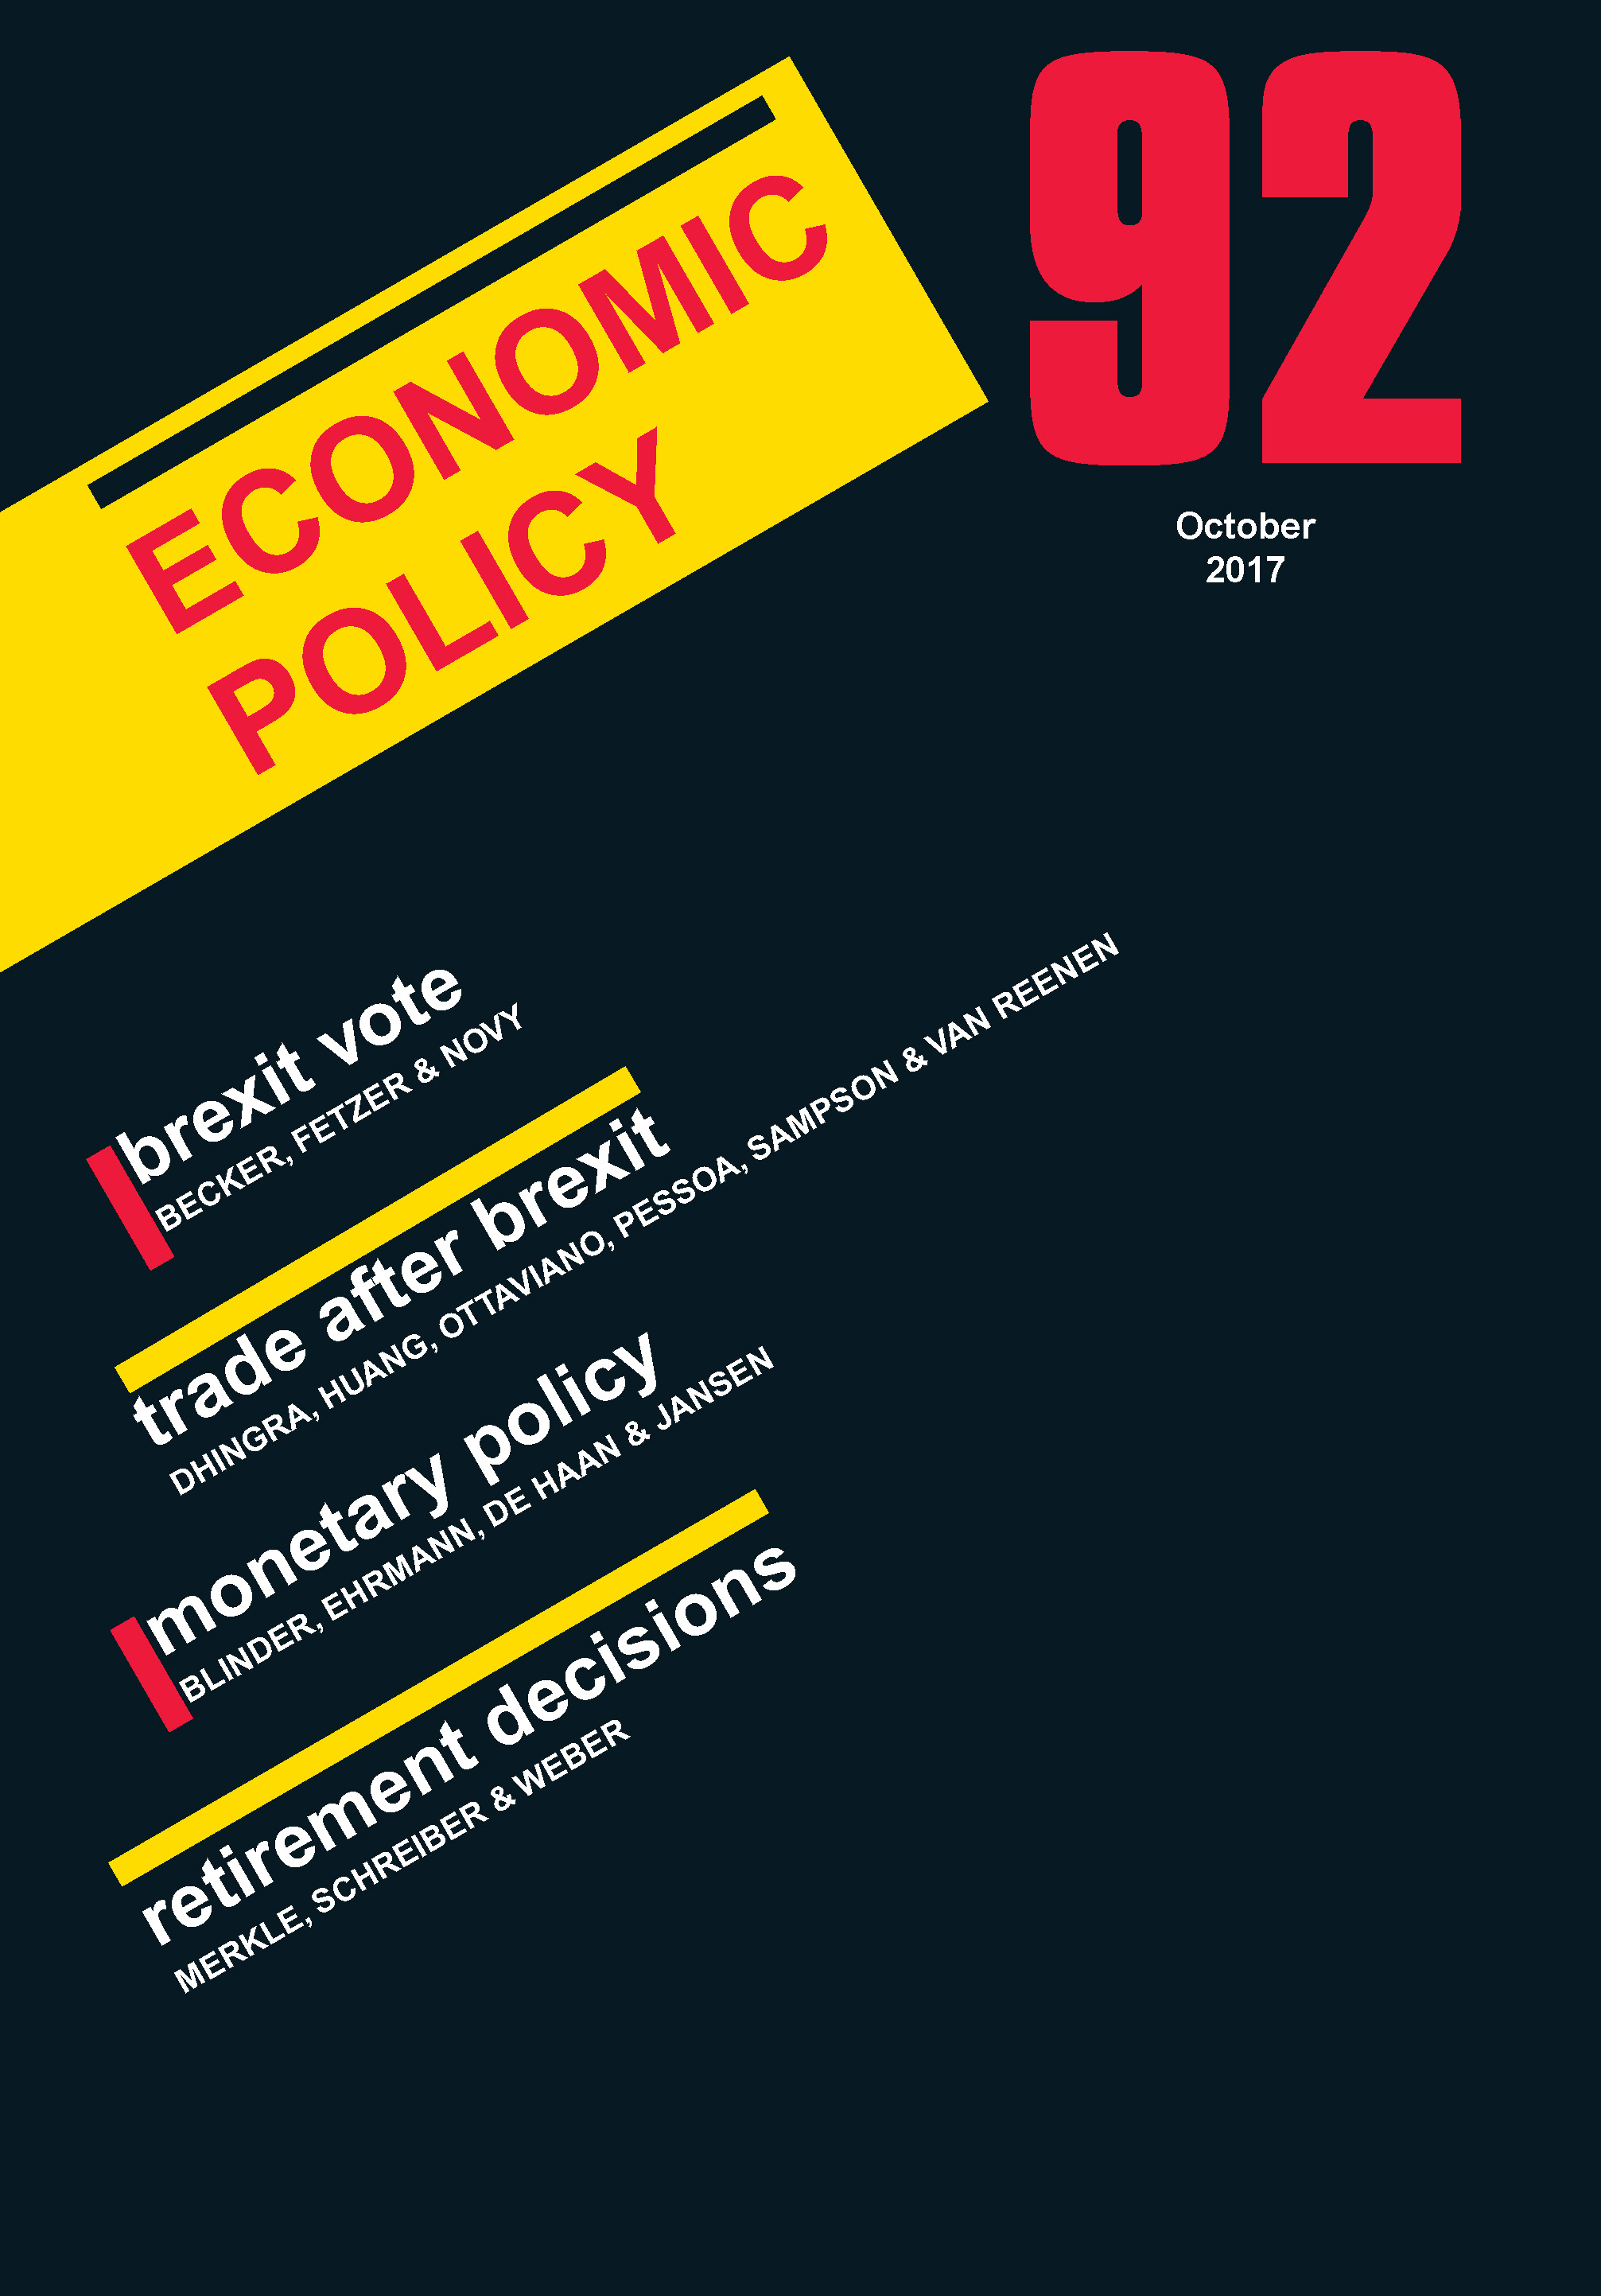 centre economic policy research discussion papers Caepr discussion papers are intended as one forum for the rapid dissemination of peer-reviewed papers by centre staff on relevant research  economic policy research.